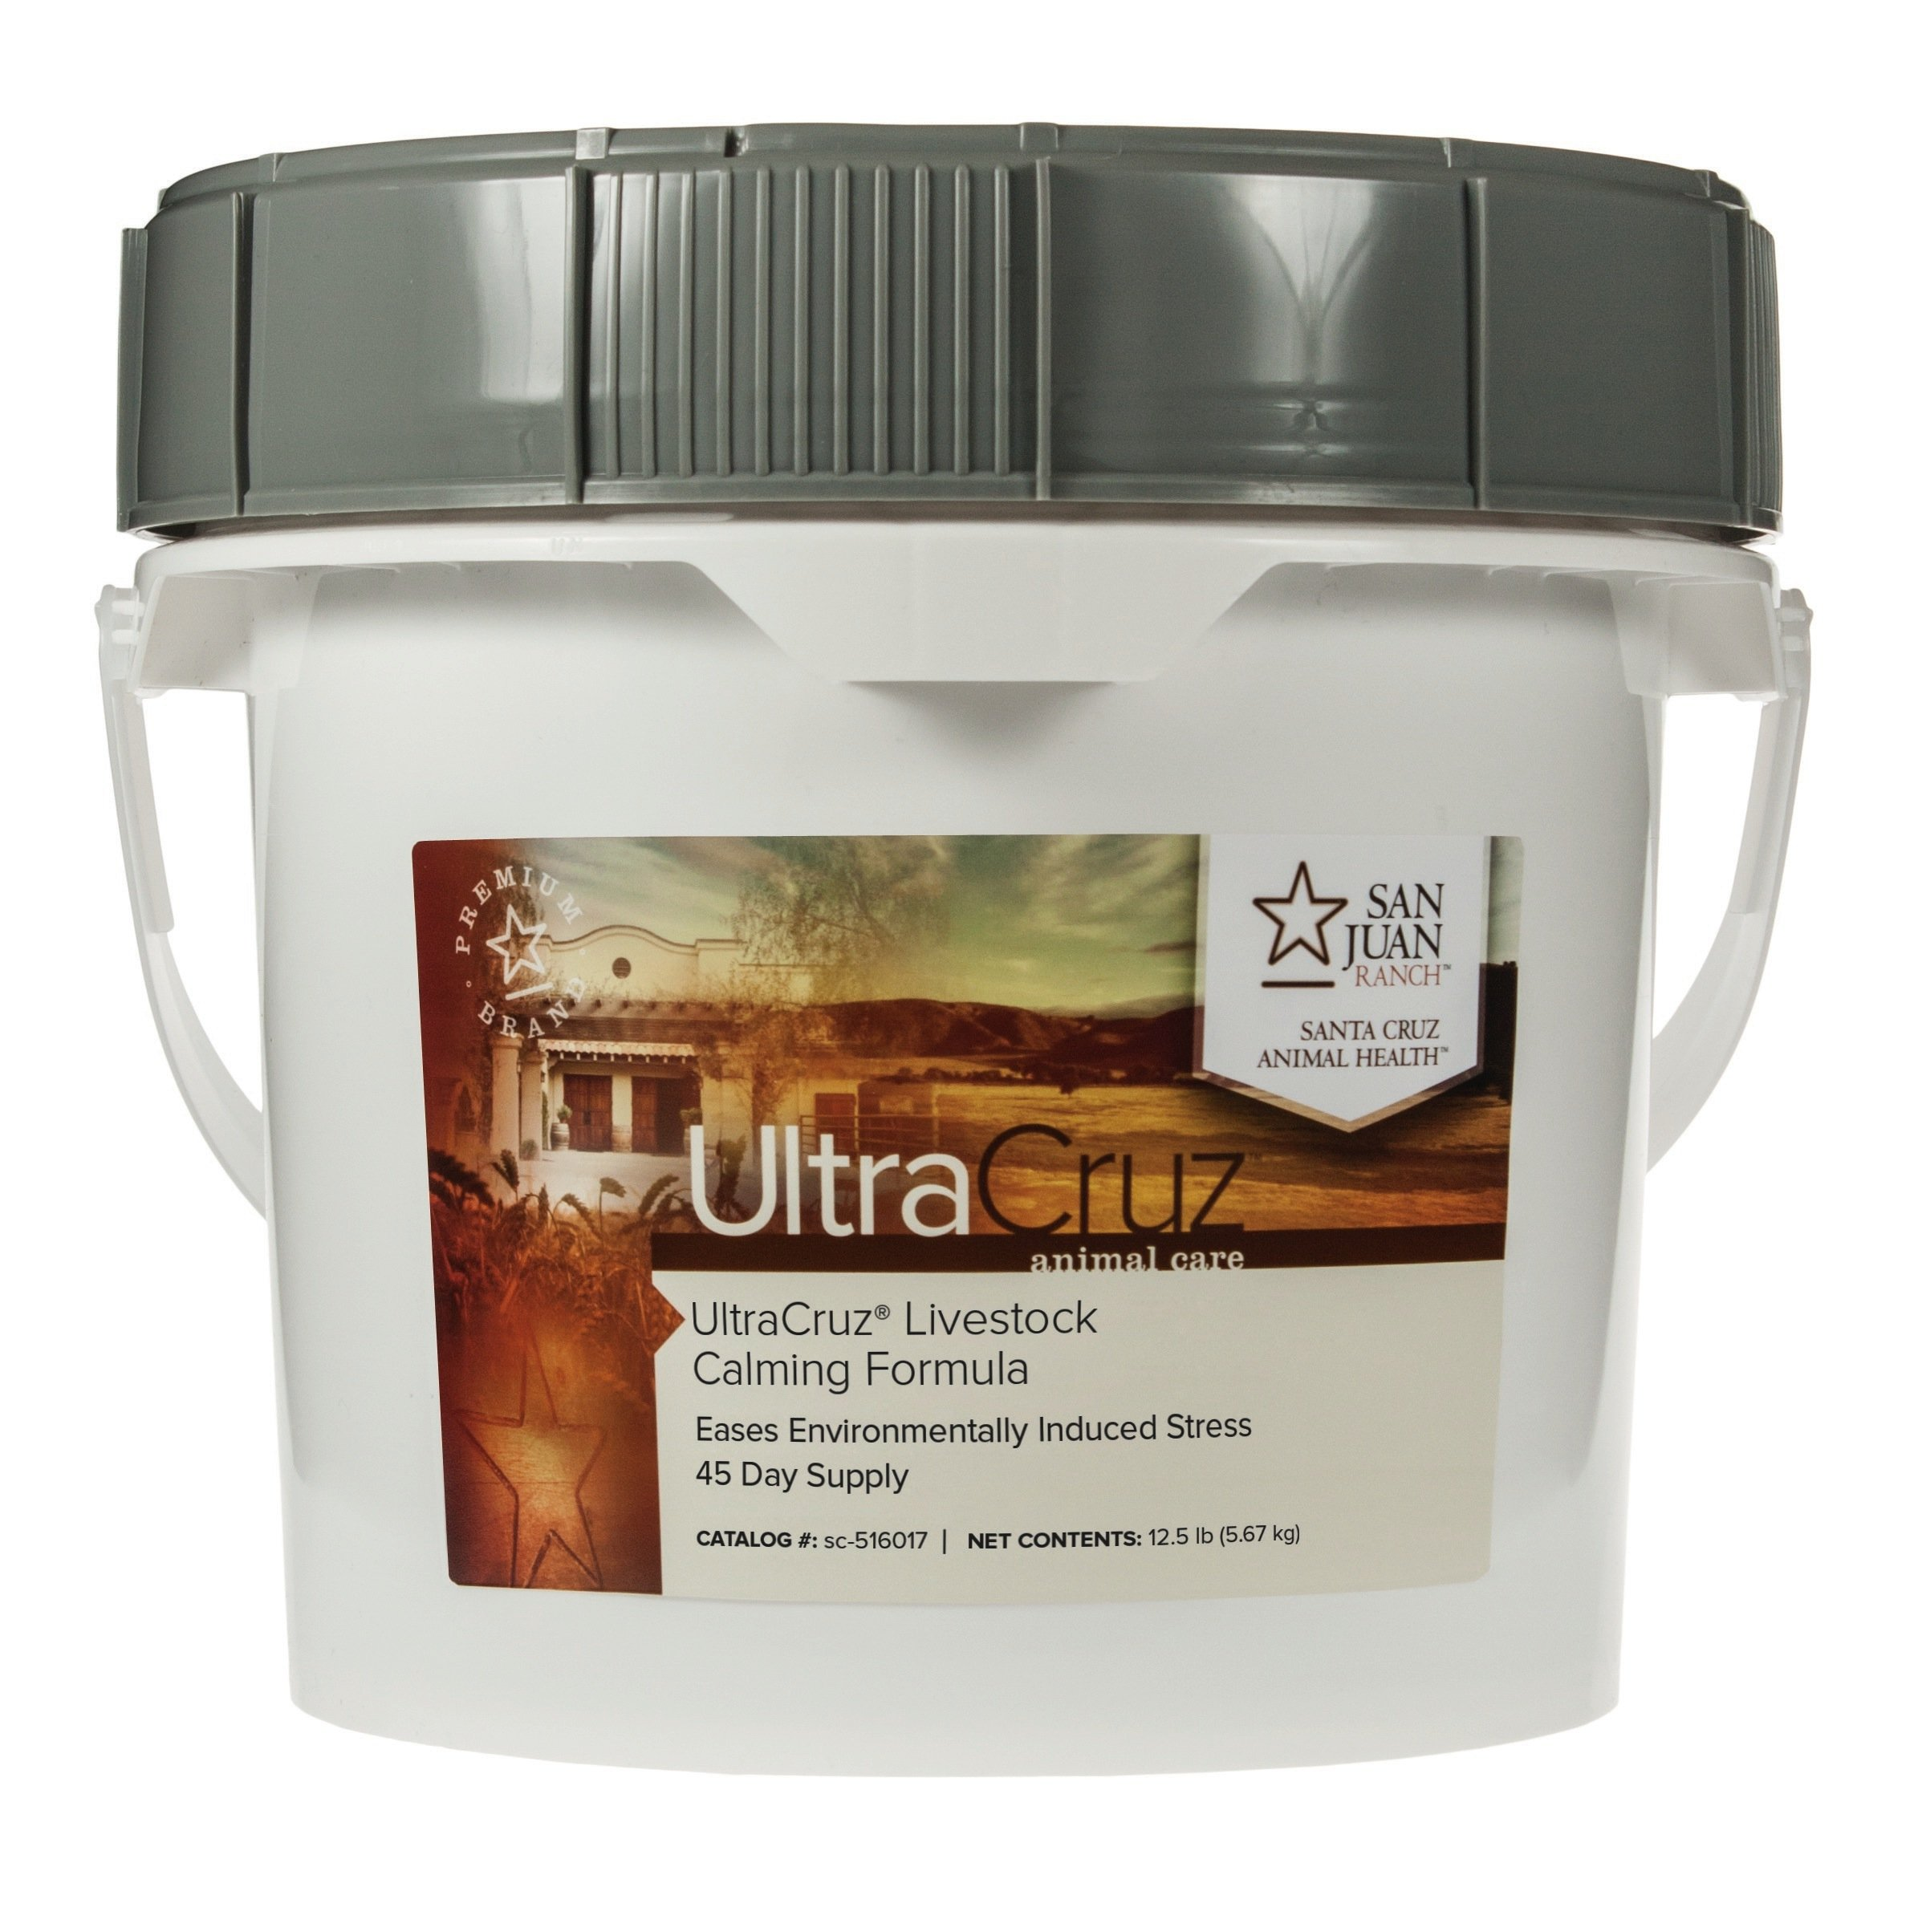 UltraCruz Livestock Calming Formula Supplement, 12 lb, Pellet (45 Day Supply) by UltraCruz